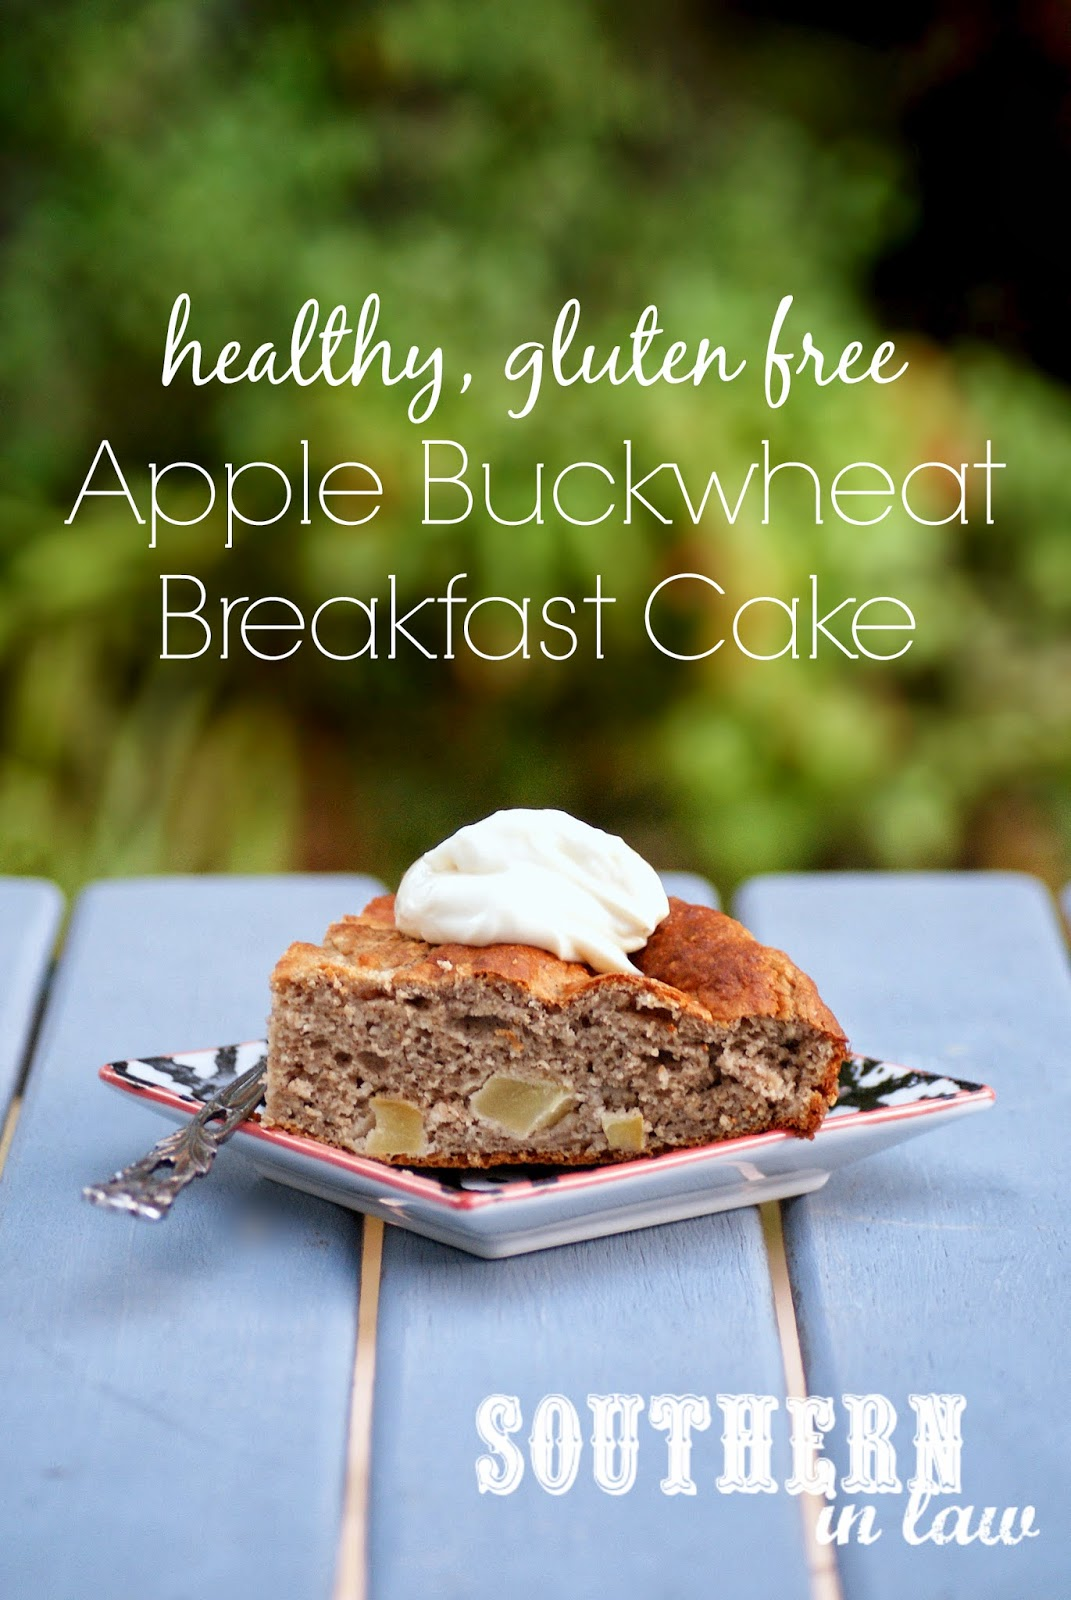 Healthy Apple Buckwheat Breakfast Cake Recipe -  low fat, gluten free, sugar free